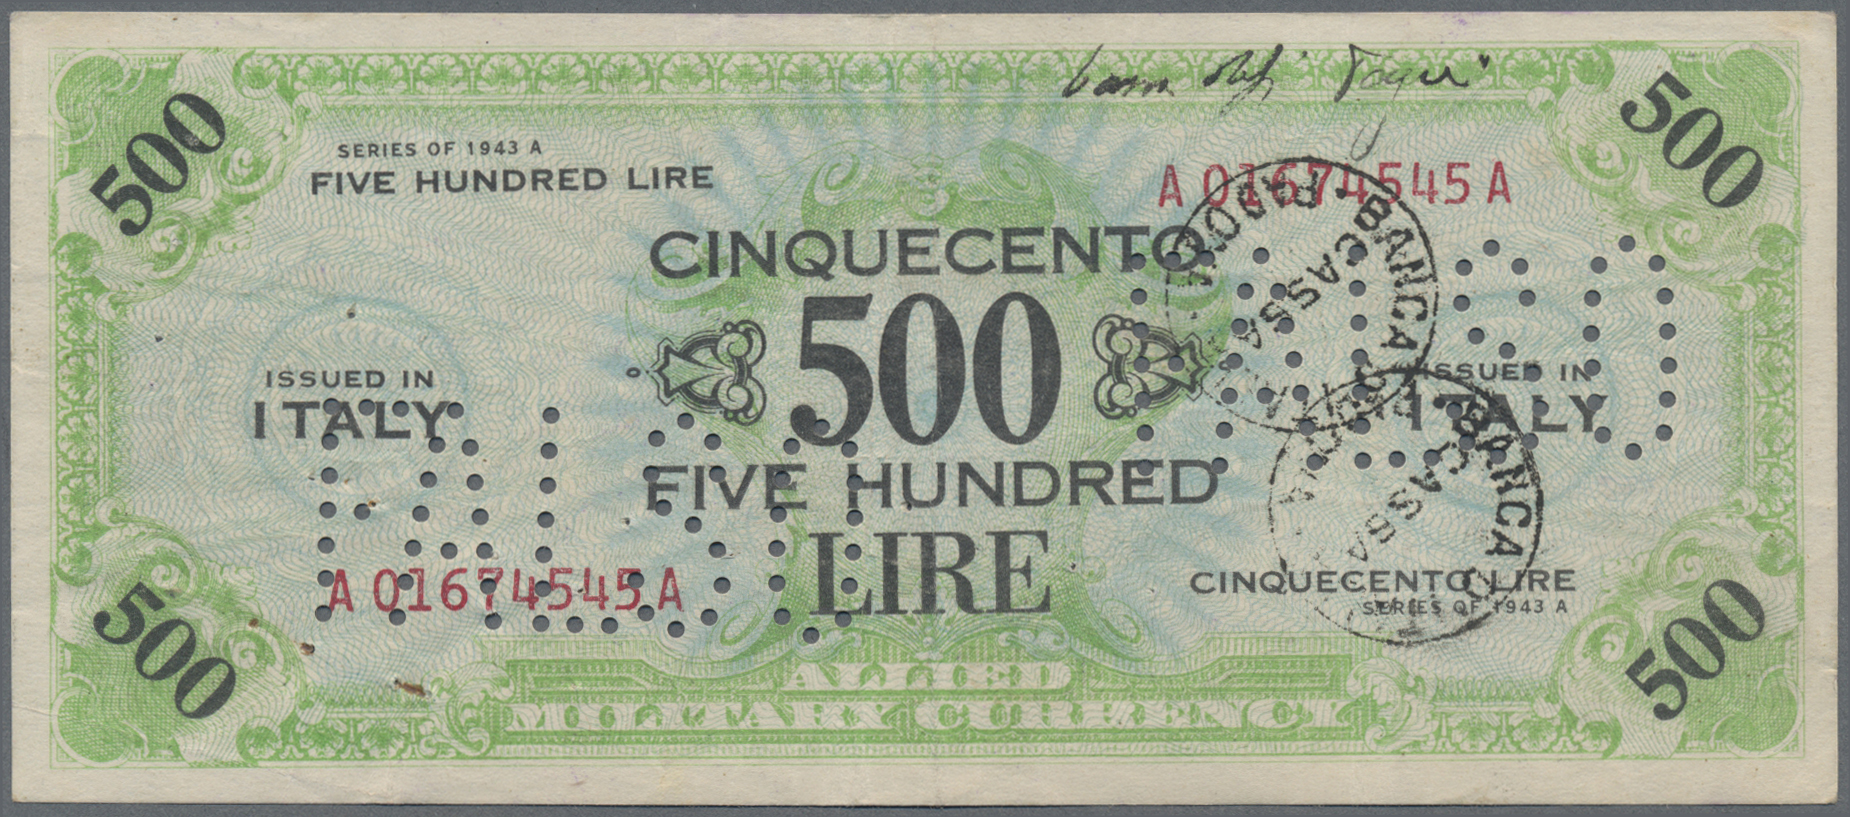 Lot 00464 - Italy / Italien | Banknoten  -  Auktionshaus Christoph Gärtner GmbH & Co. KG Sale #48 The Banknotes